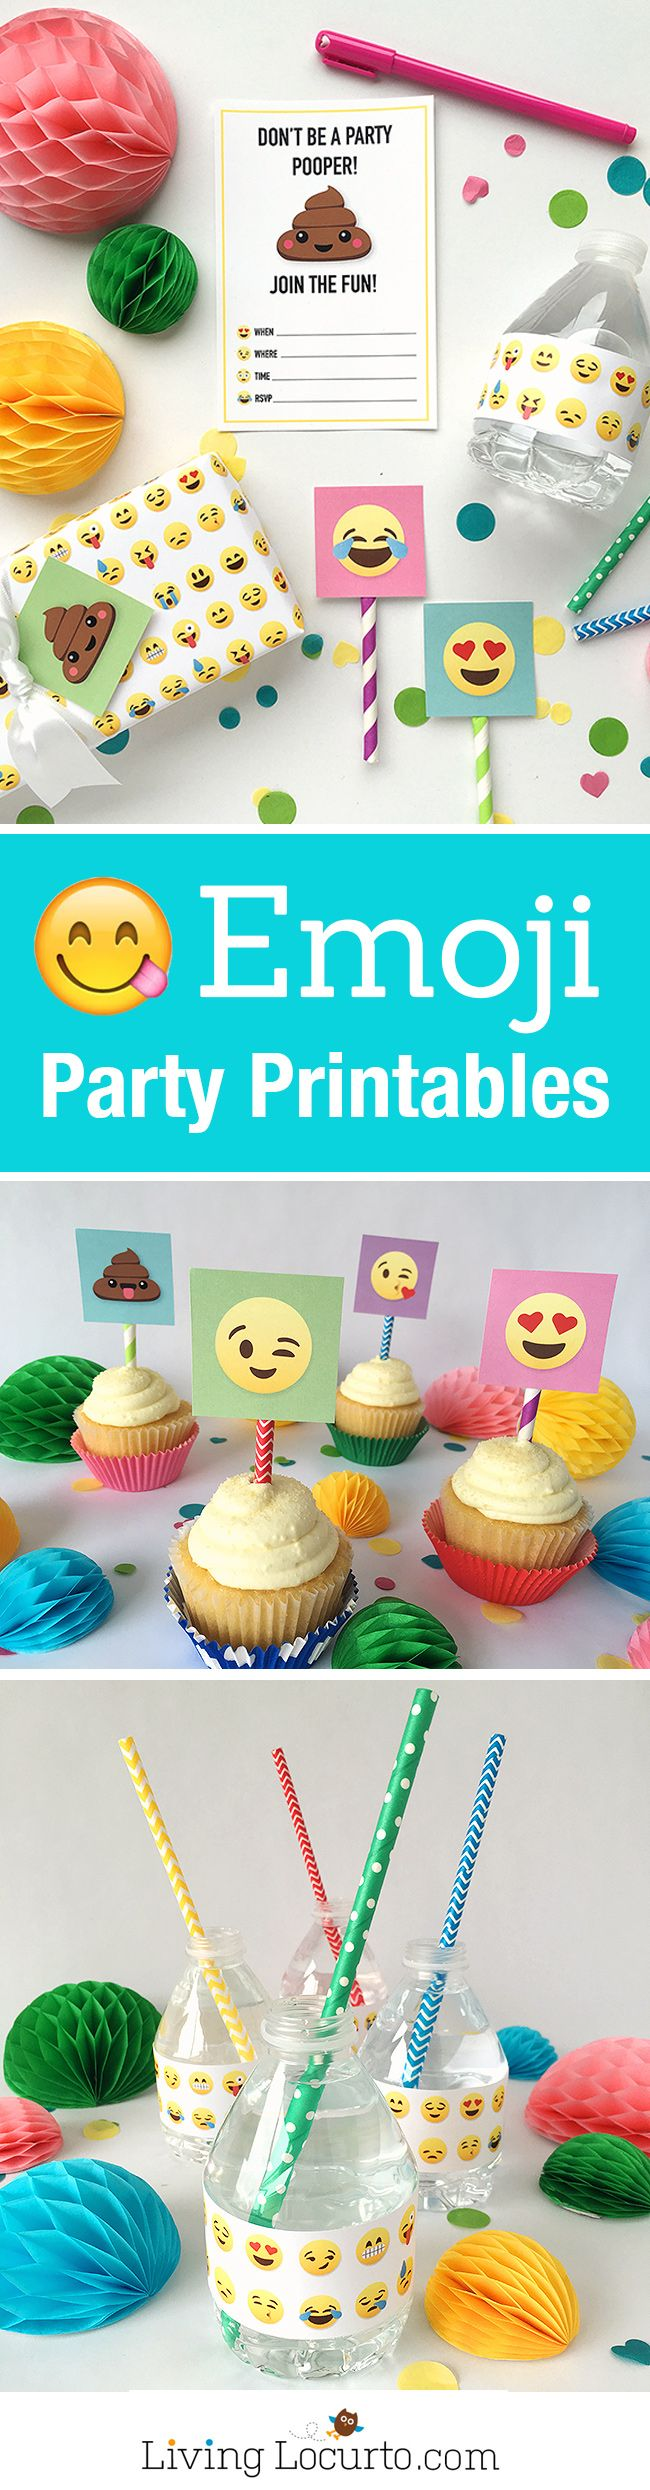 Emoji Party Ideas! Colorful Free Party Printables perfect for any Emoji Fan. Emoji Poop Invitations, Tags, Water Bottles and Gift Wrap. Emoji birthday or graduation party fun. ~ LivingLocurto.com #emojiparty #printables #emoji